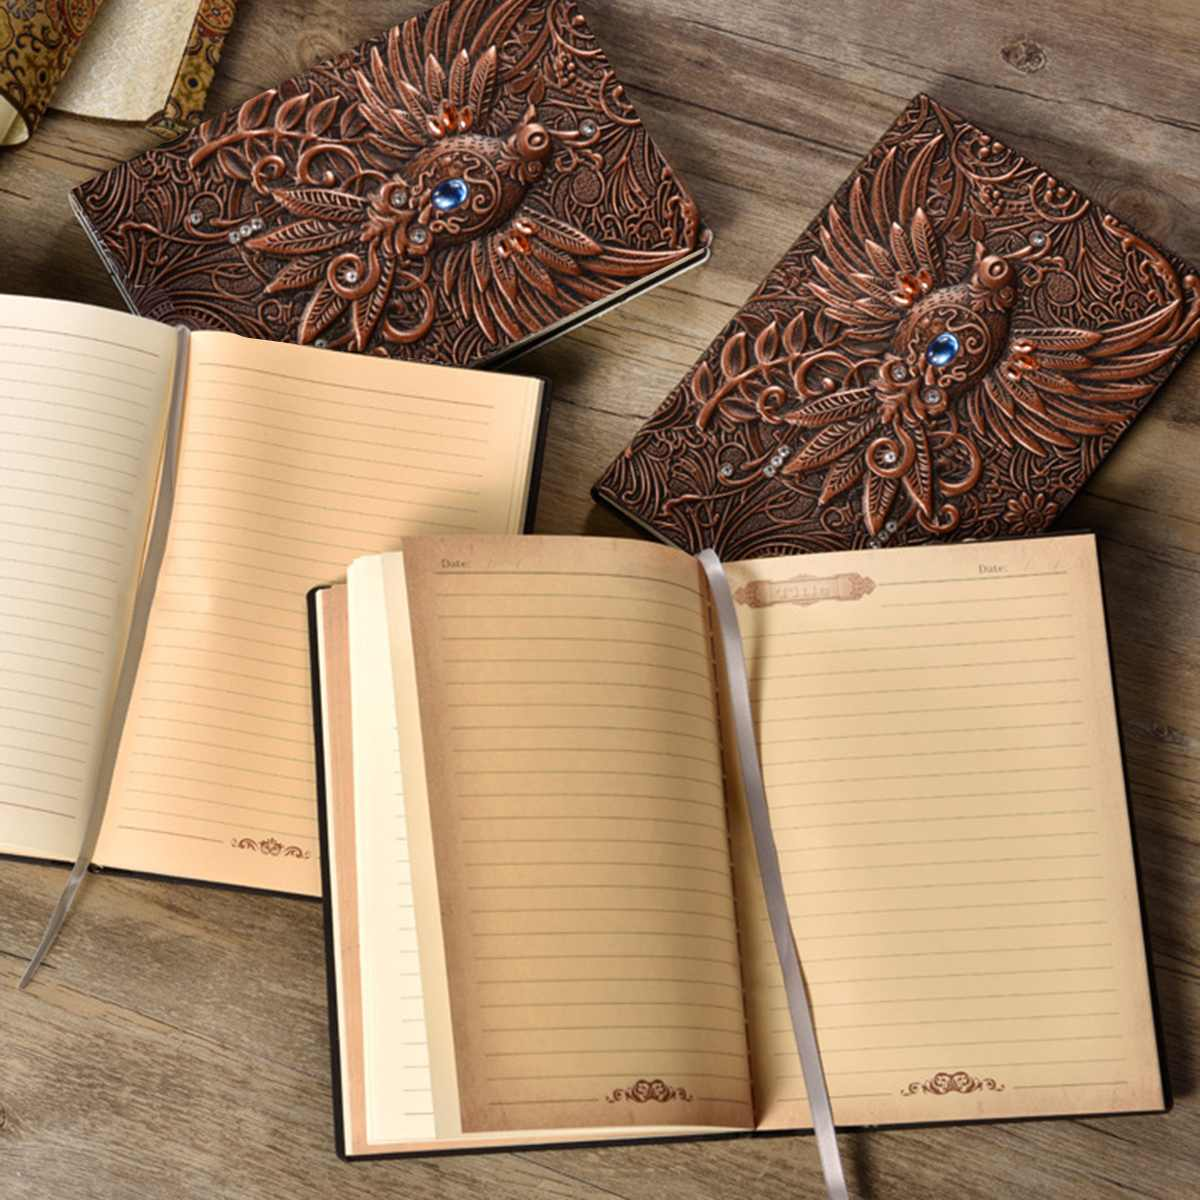 Vintage Leather Notebook Journal Handcraft Embossed Phoenix Diary Notebook Gift Bible Book Travel Journal Planner School OfficeVintage Leather Notebook Journal Handcraft Embossed Phoenix Diary Notebook Gift Bible Book Travel Journal Planner School Office